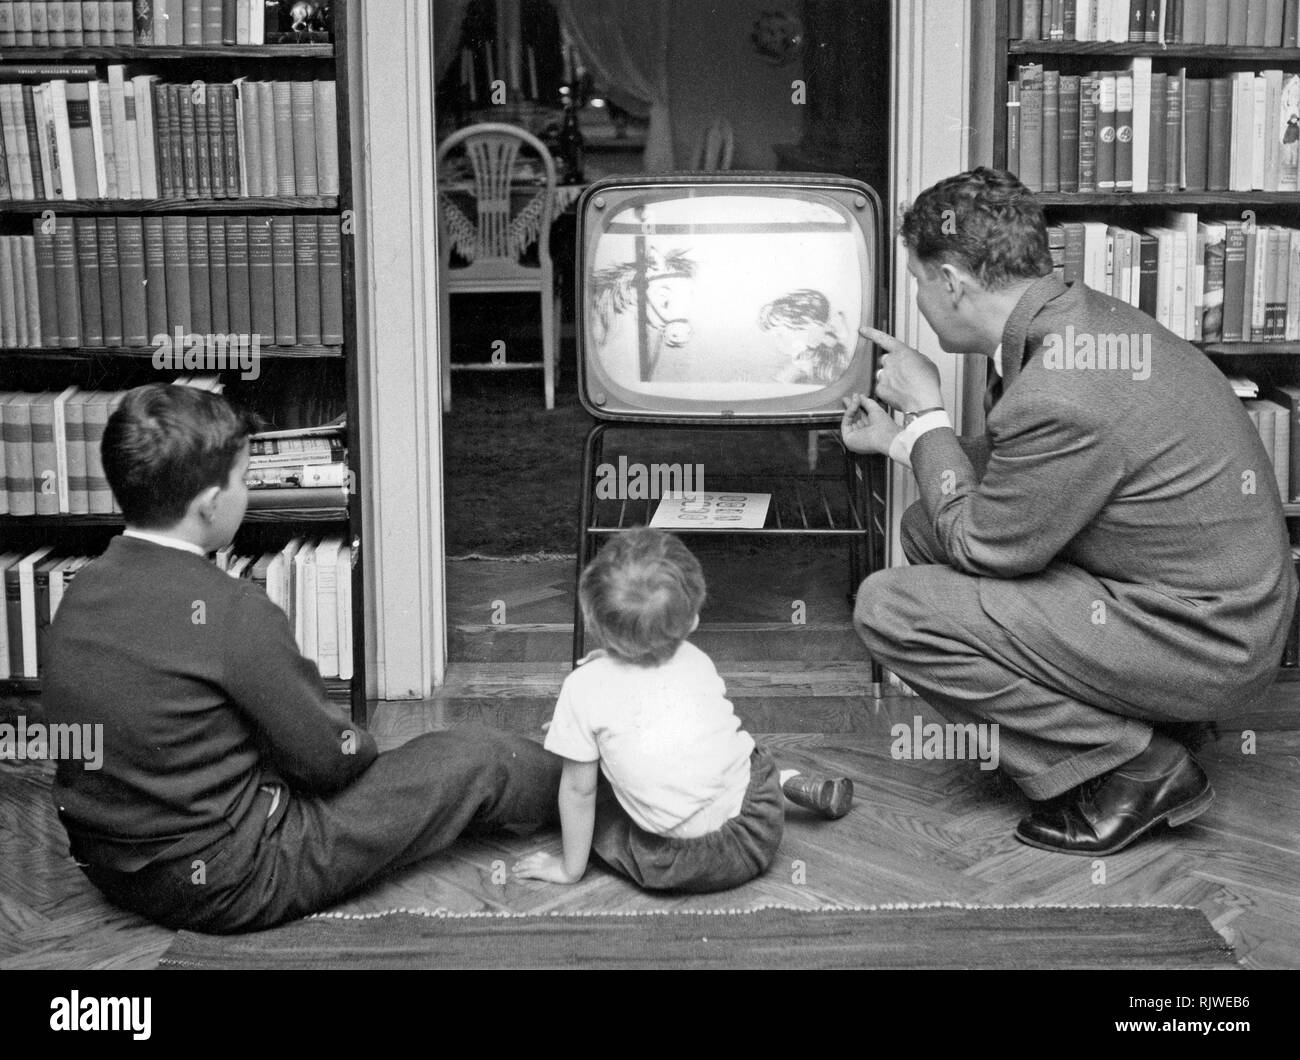 Television in the 1950s. A father with his children in front of the television set looking at a children's program. Sweden 1958 - Stock Image